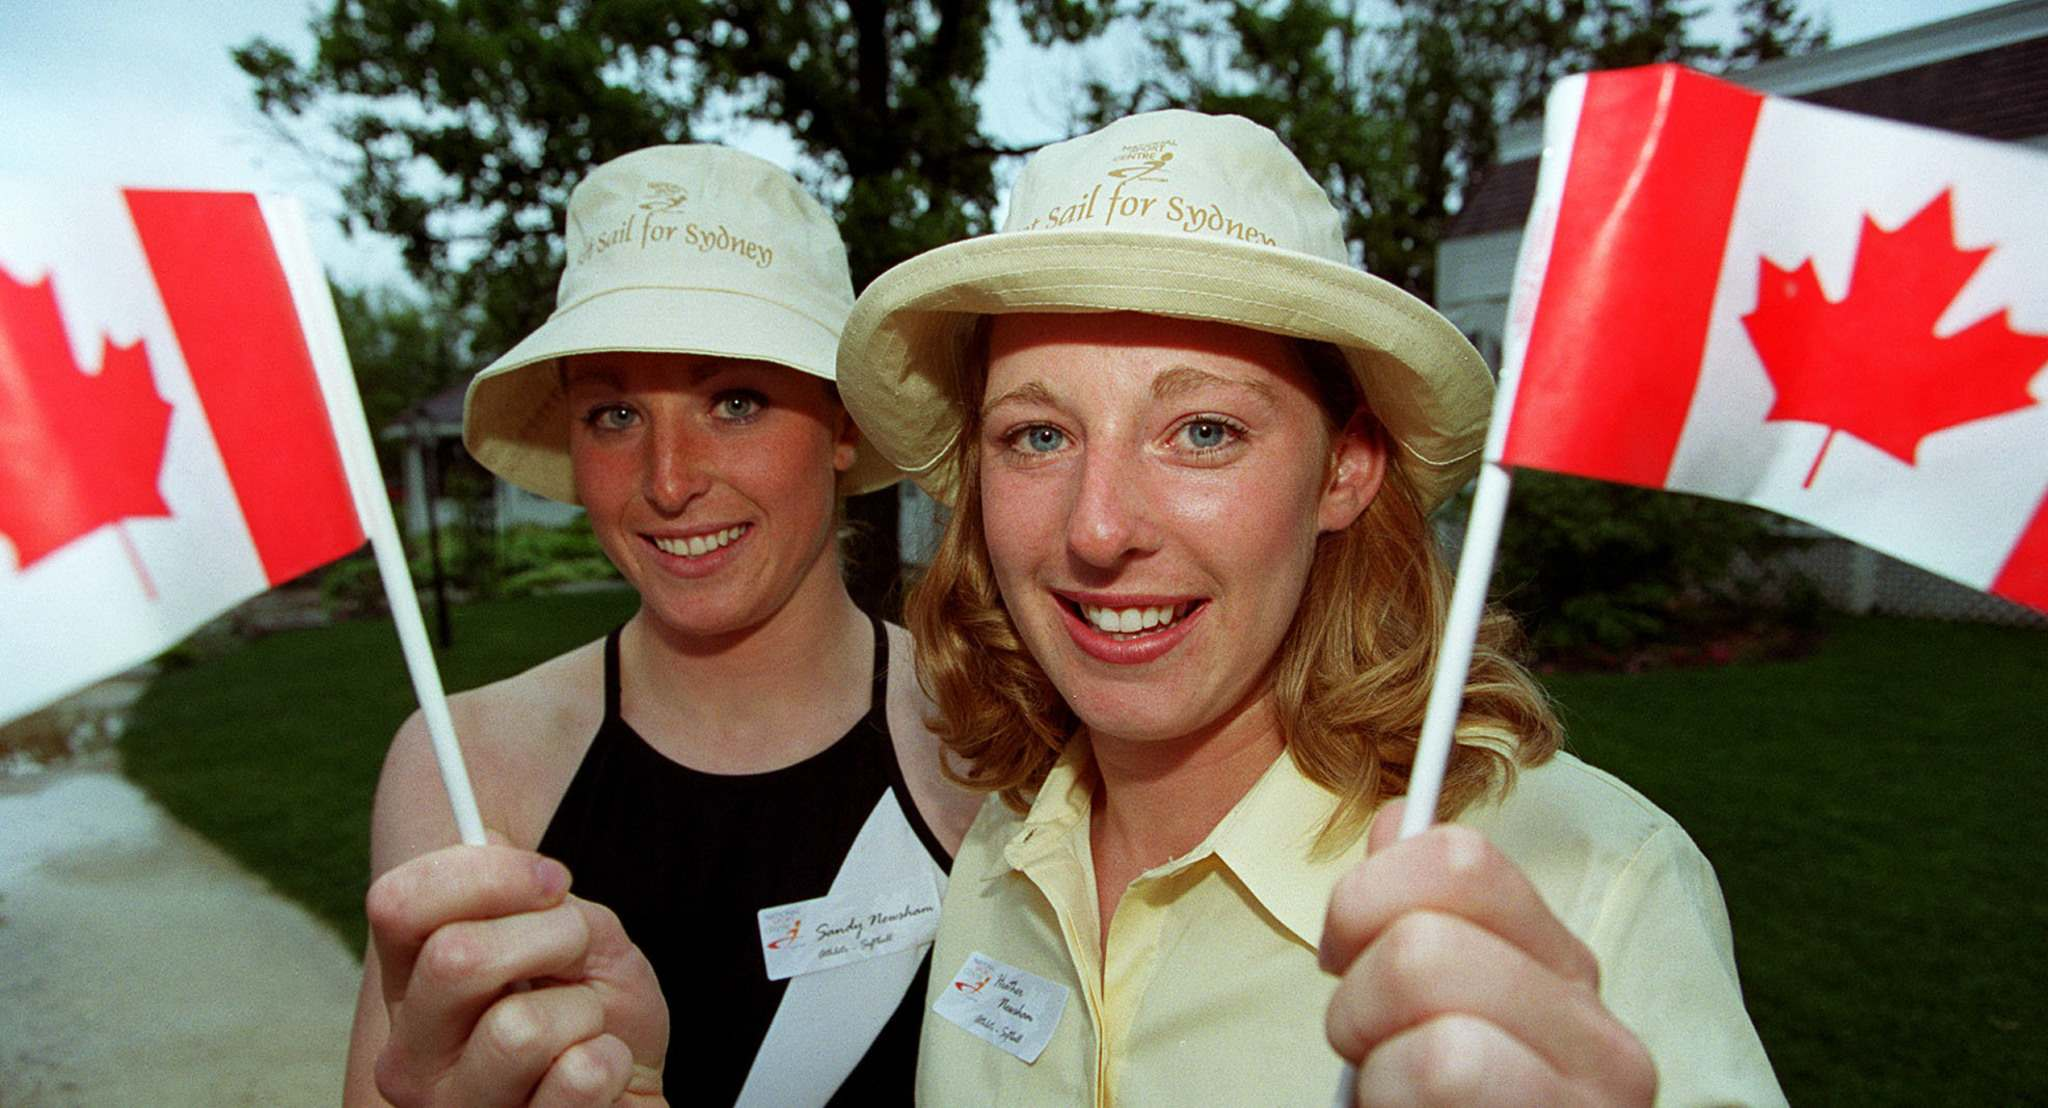 Sandy (Newsham) Maskiw, left, and her younger sister Heather (Newsham) Ruby in June 2000. (Jeff De Booy / Free Press files)</p>